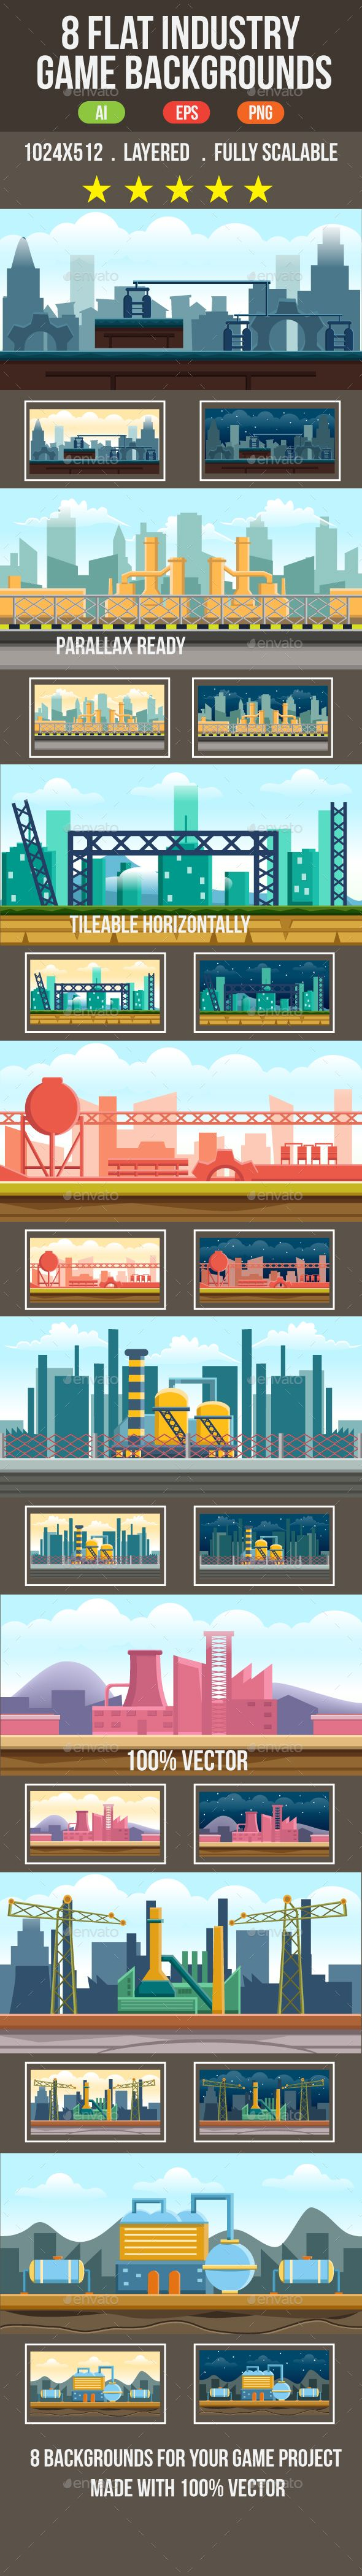 8 Flat Industrial Game Backgrounds Download here: https://graphicriver.net/item/8-flat-industrial-game-backgrounds/18889650?ref=KlitVogli